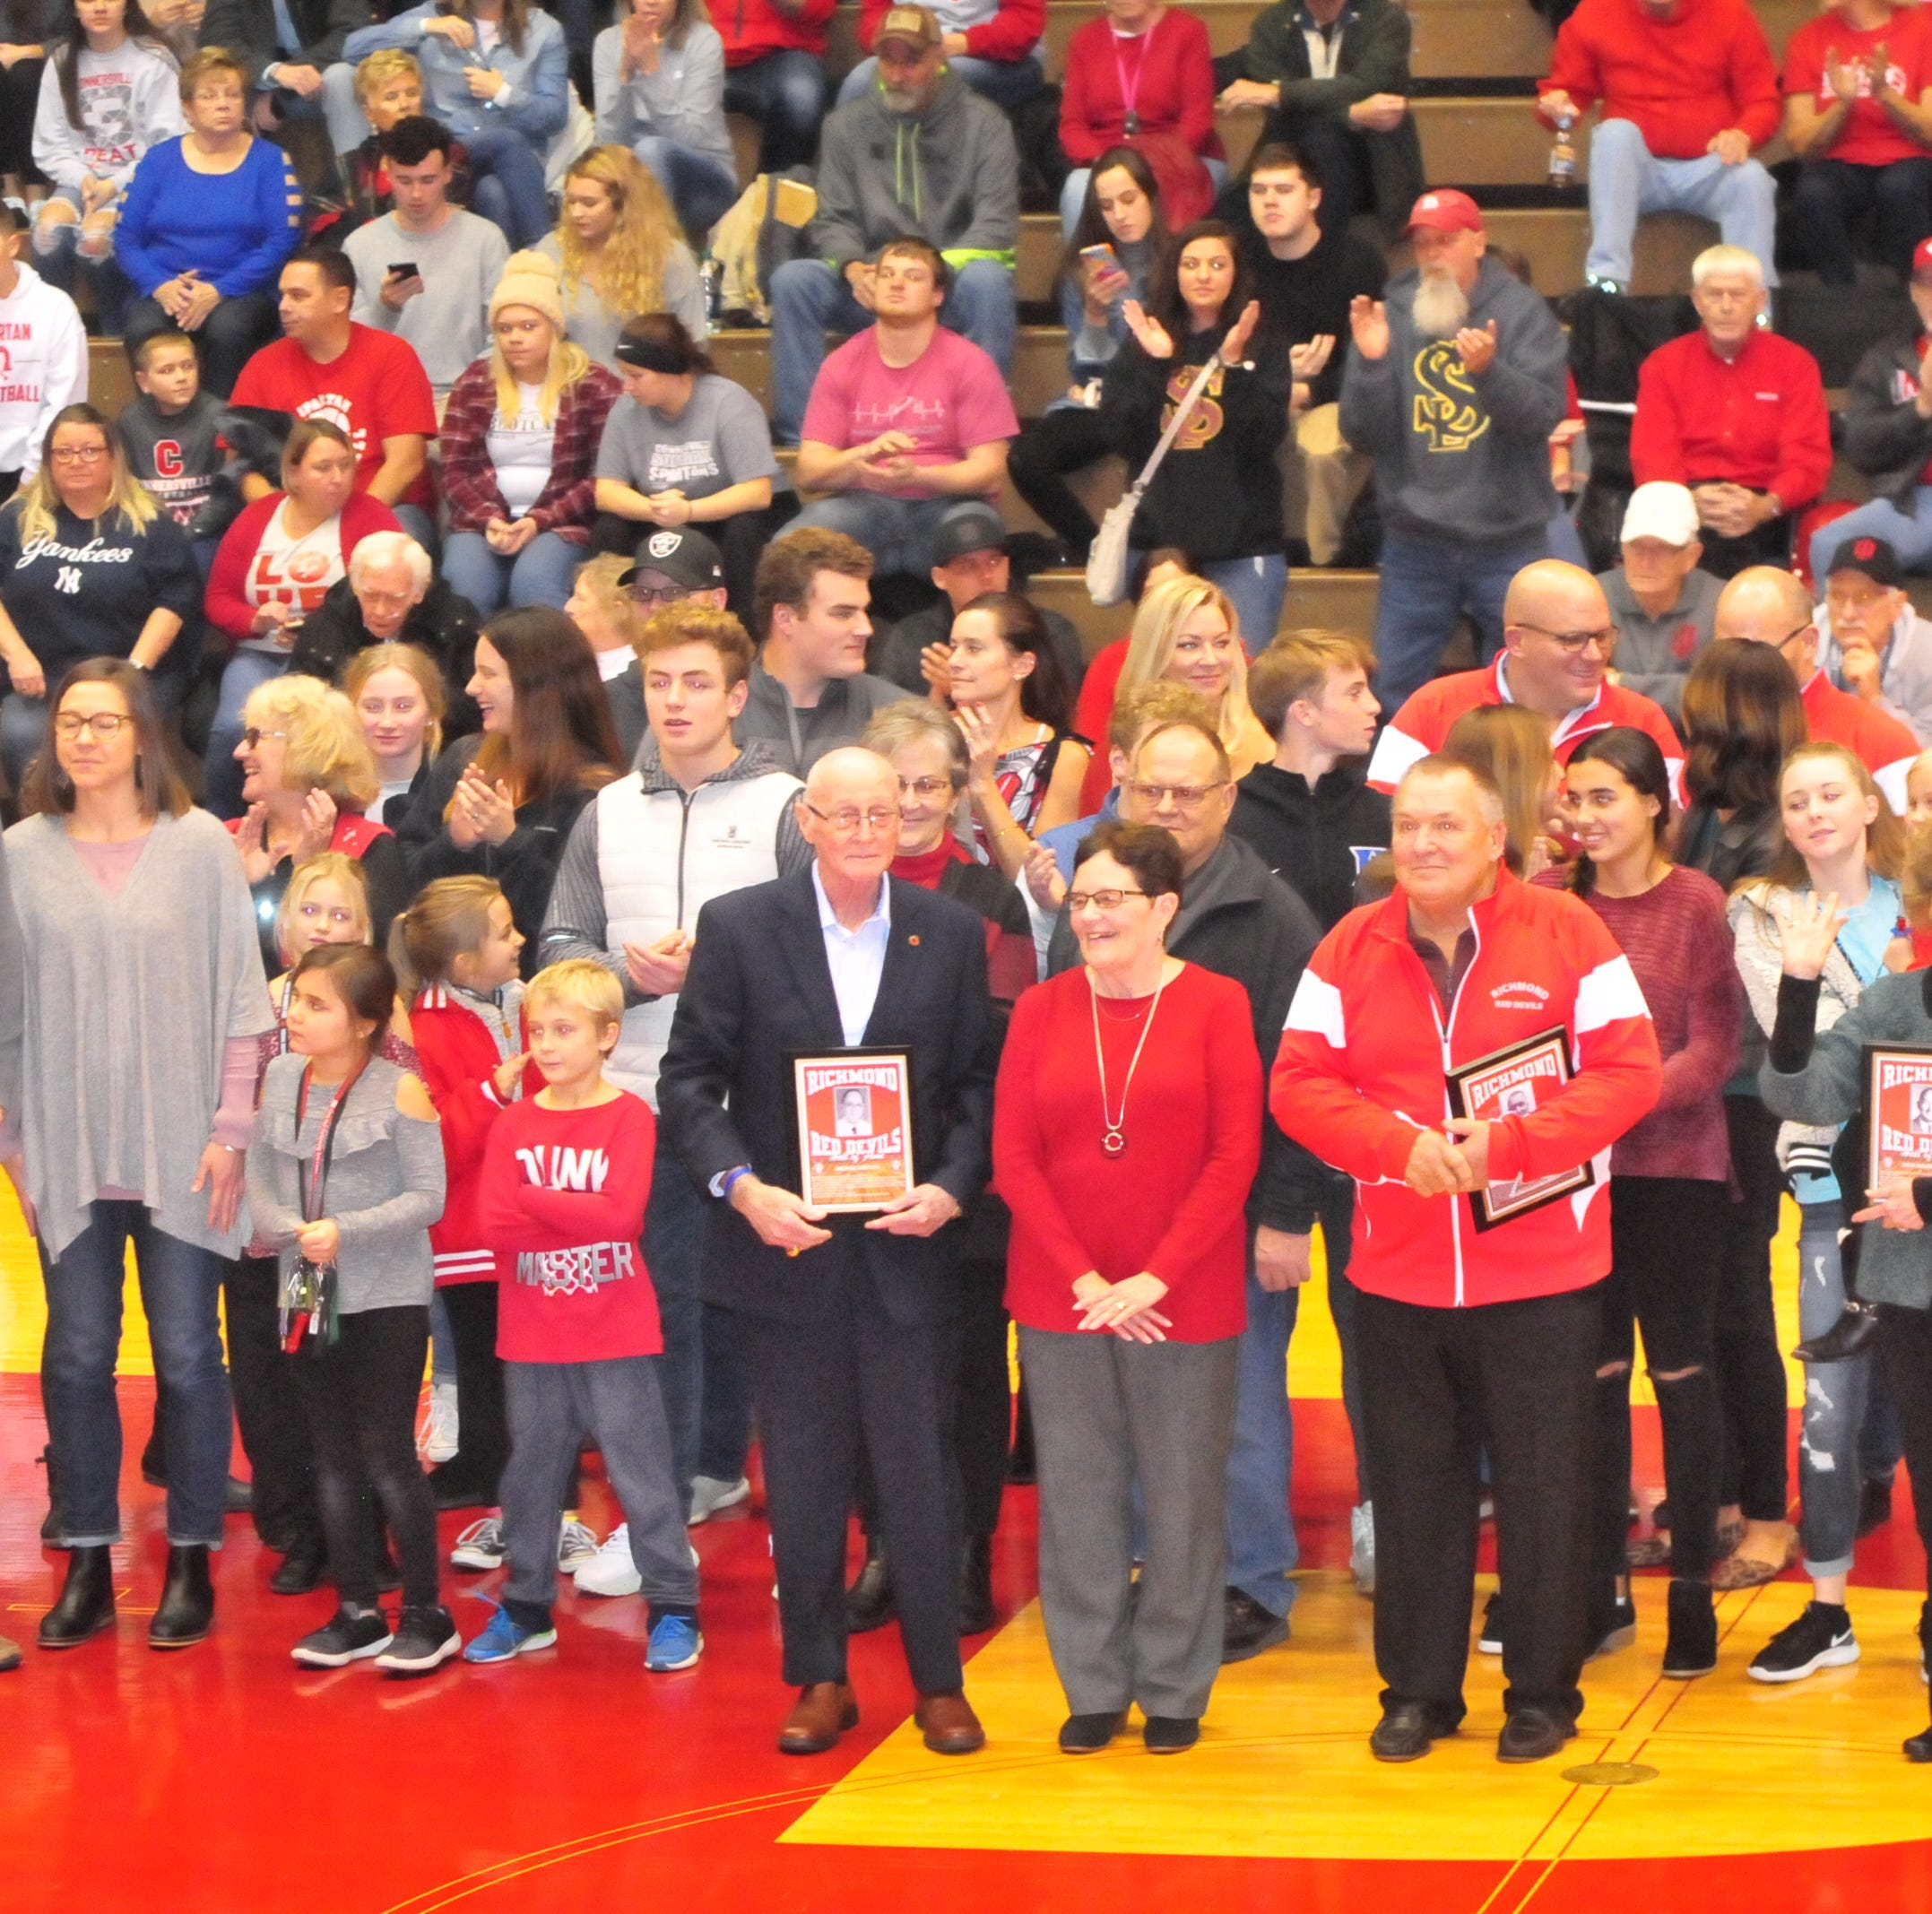 7 inducted into Richmond Coaches Hall of Fame during Connersville game